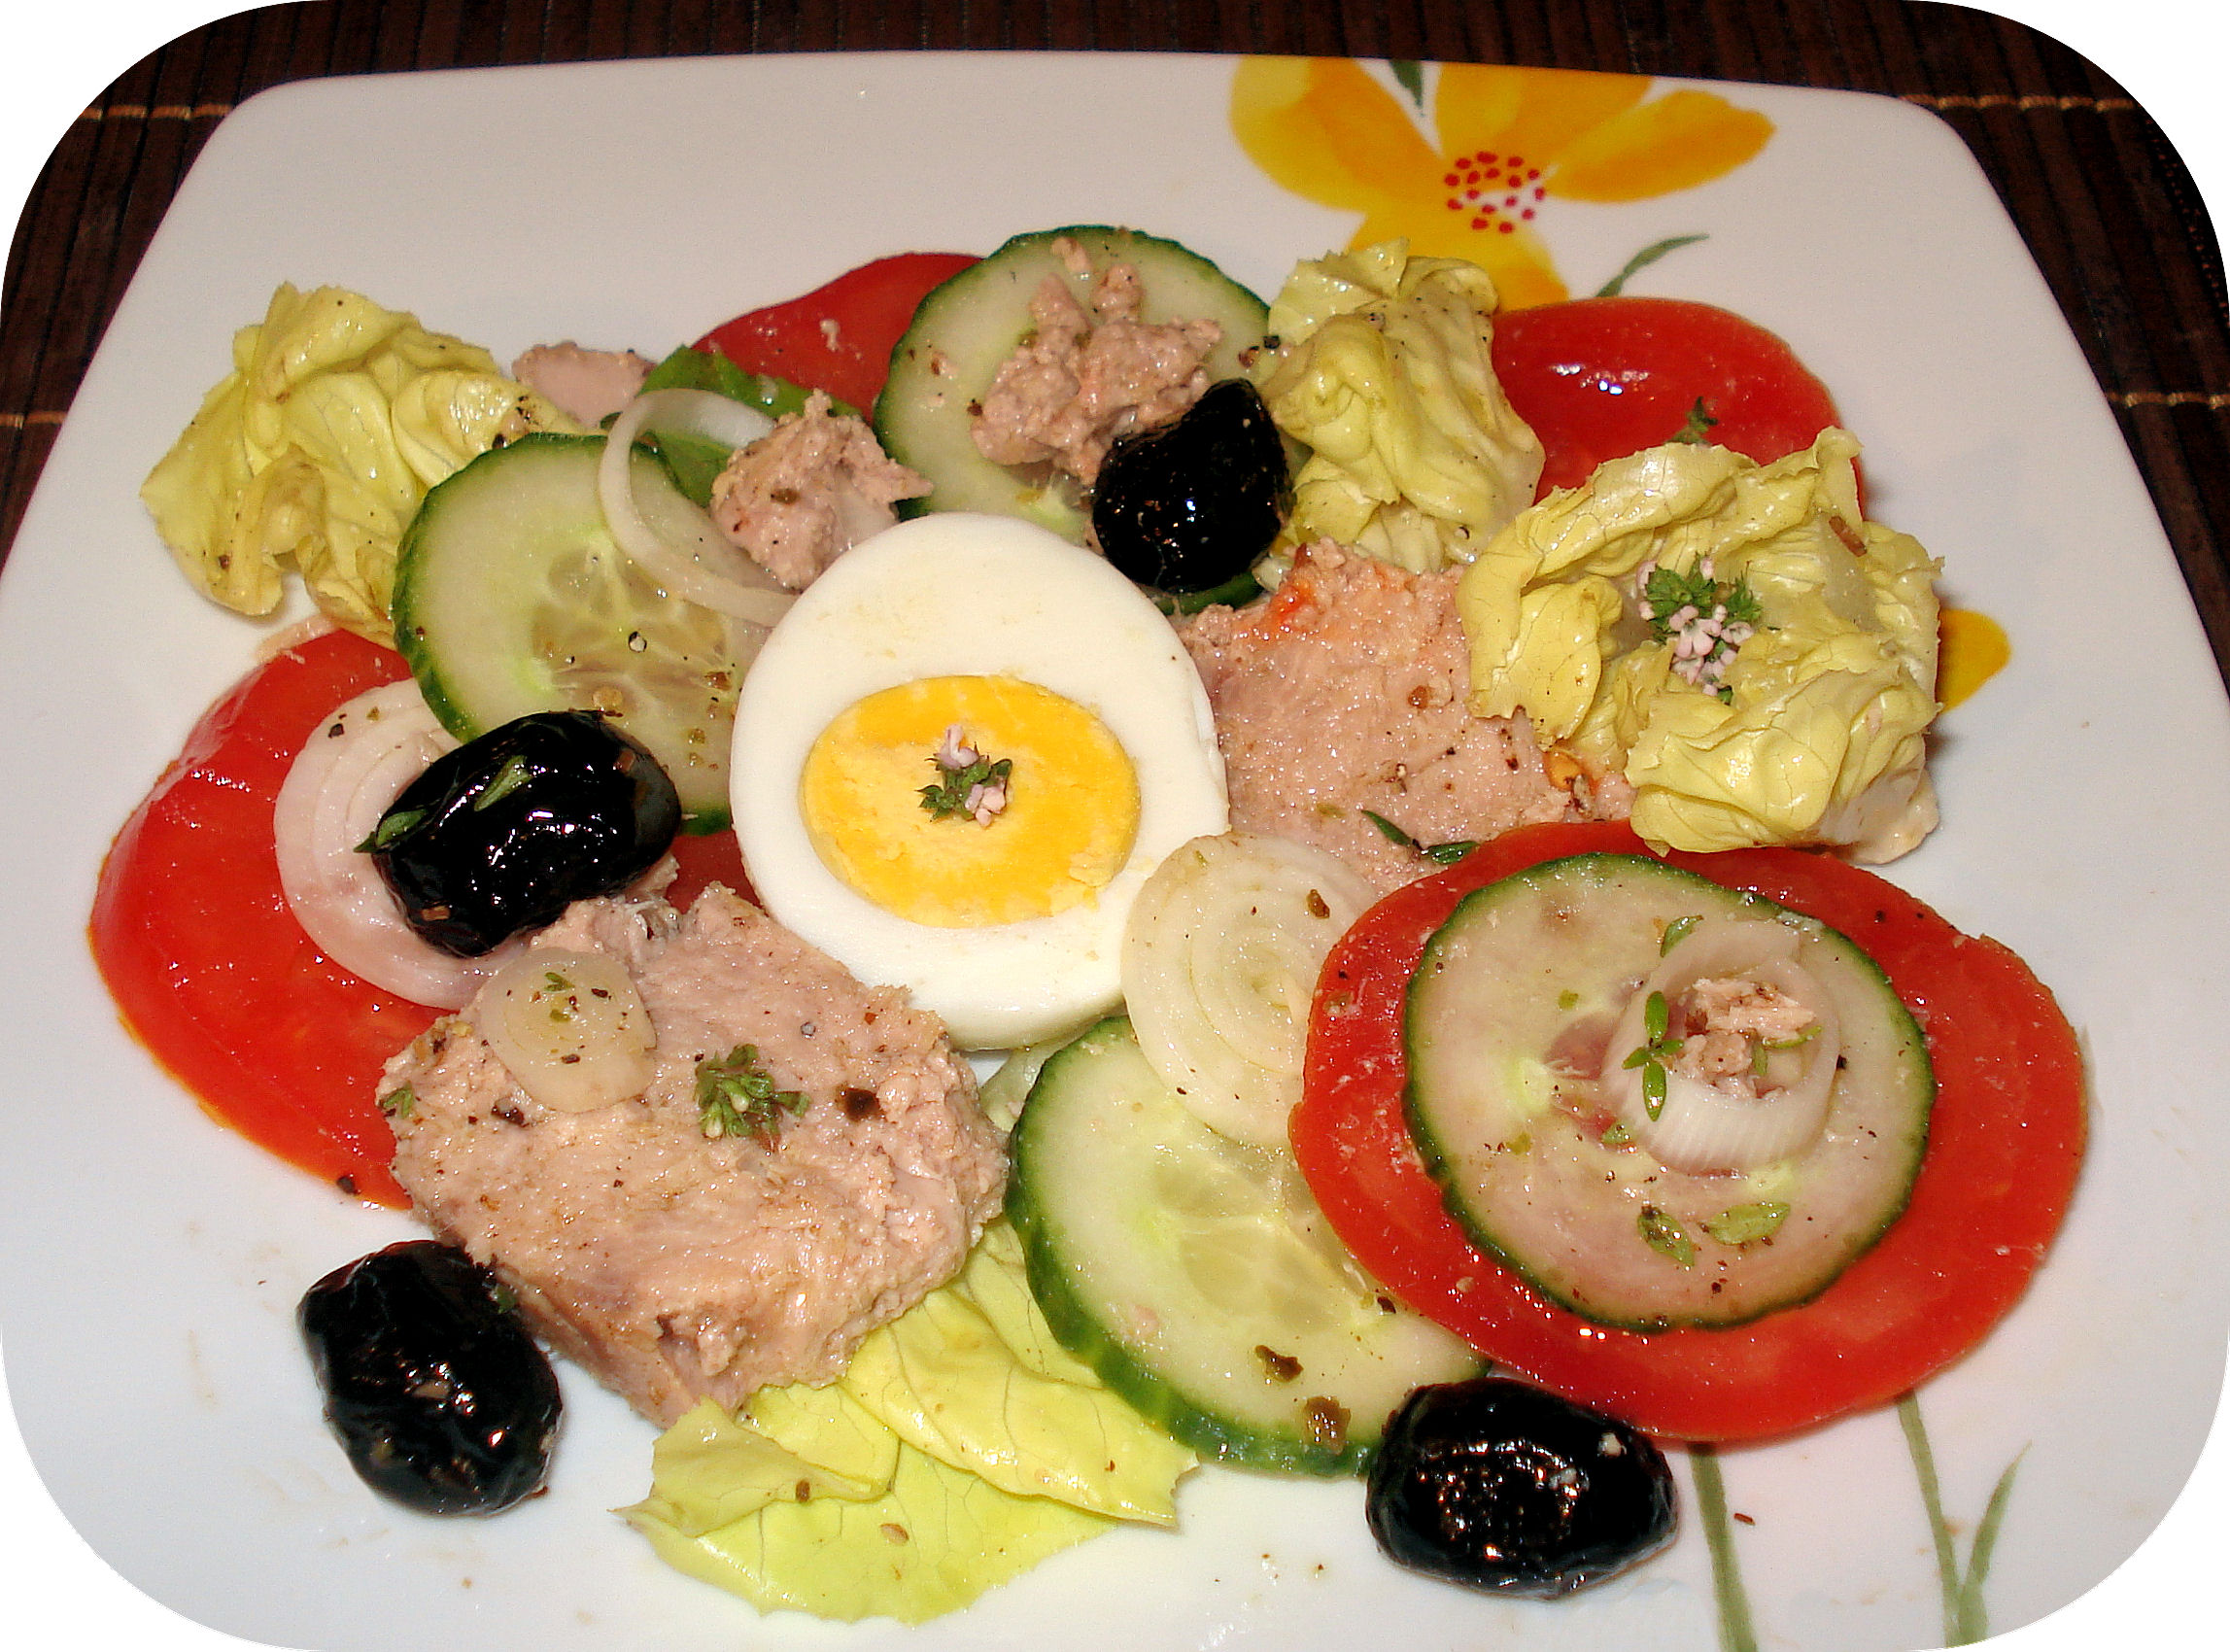 Recette Salade Nicoise Related Keywords & Suggestions - Recette Salade ...